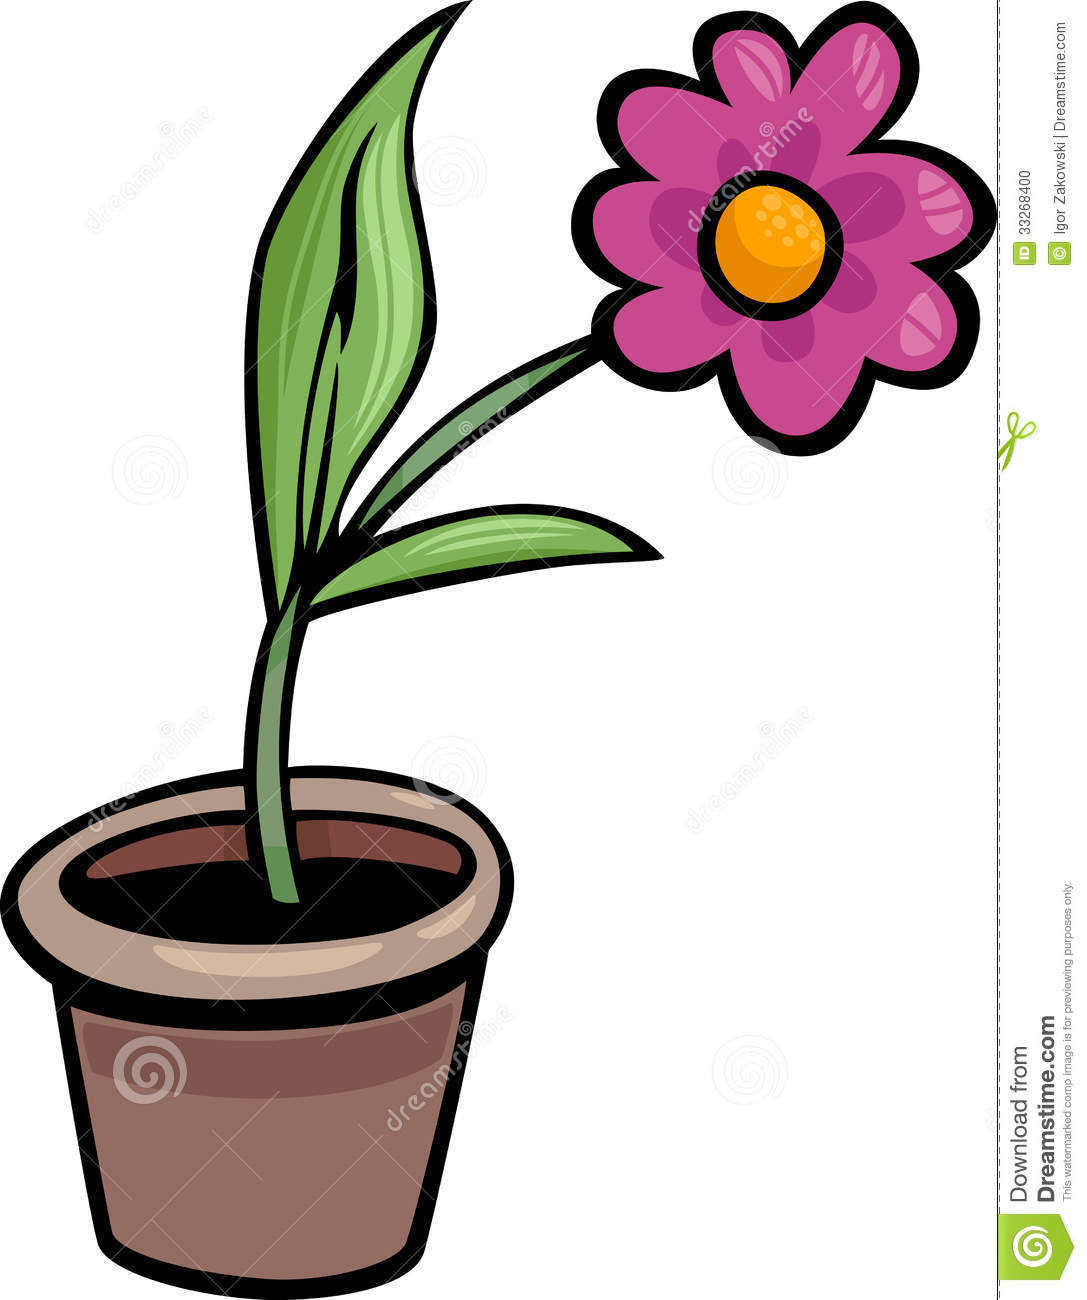 1087x1300 Limited Flower Cartoon Pictures Clip Art In Pot Illustration Stock